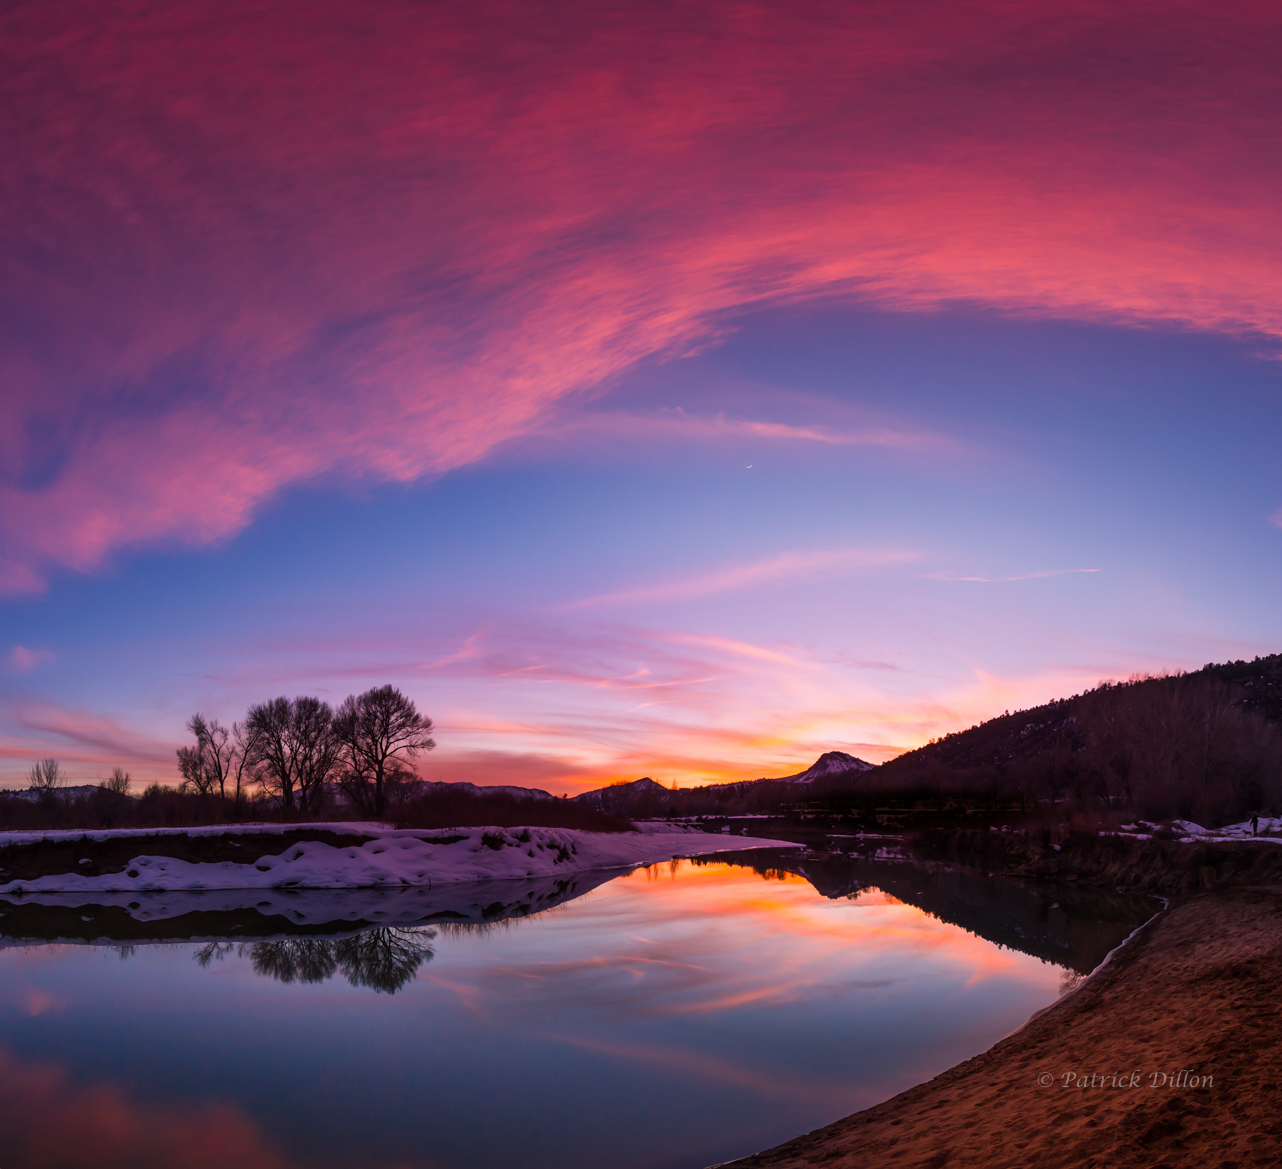 animas river sunset crescent moon reflections